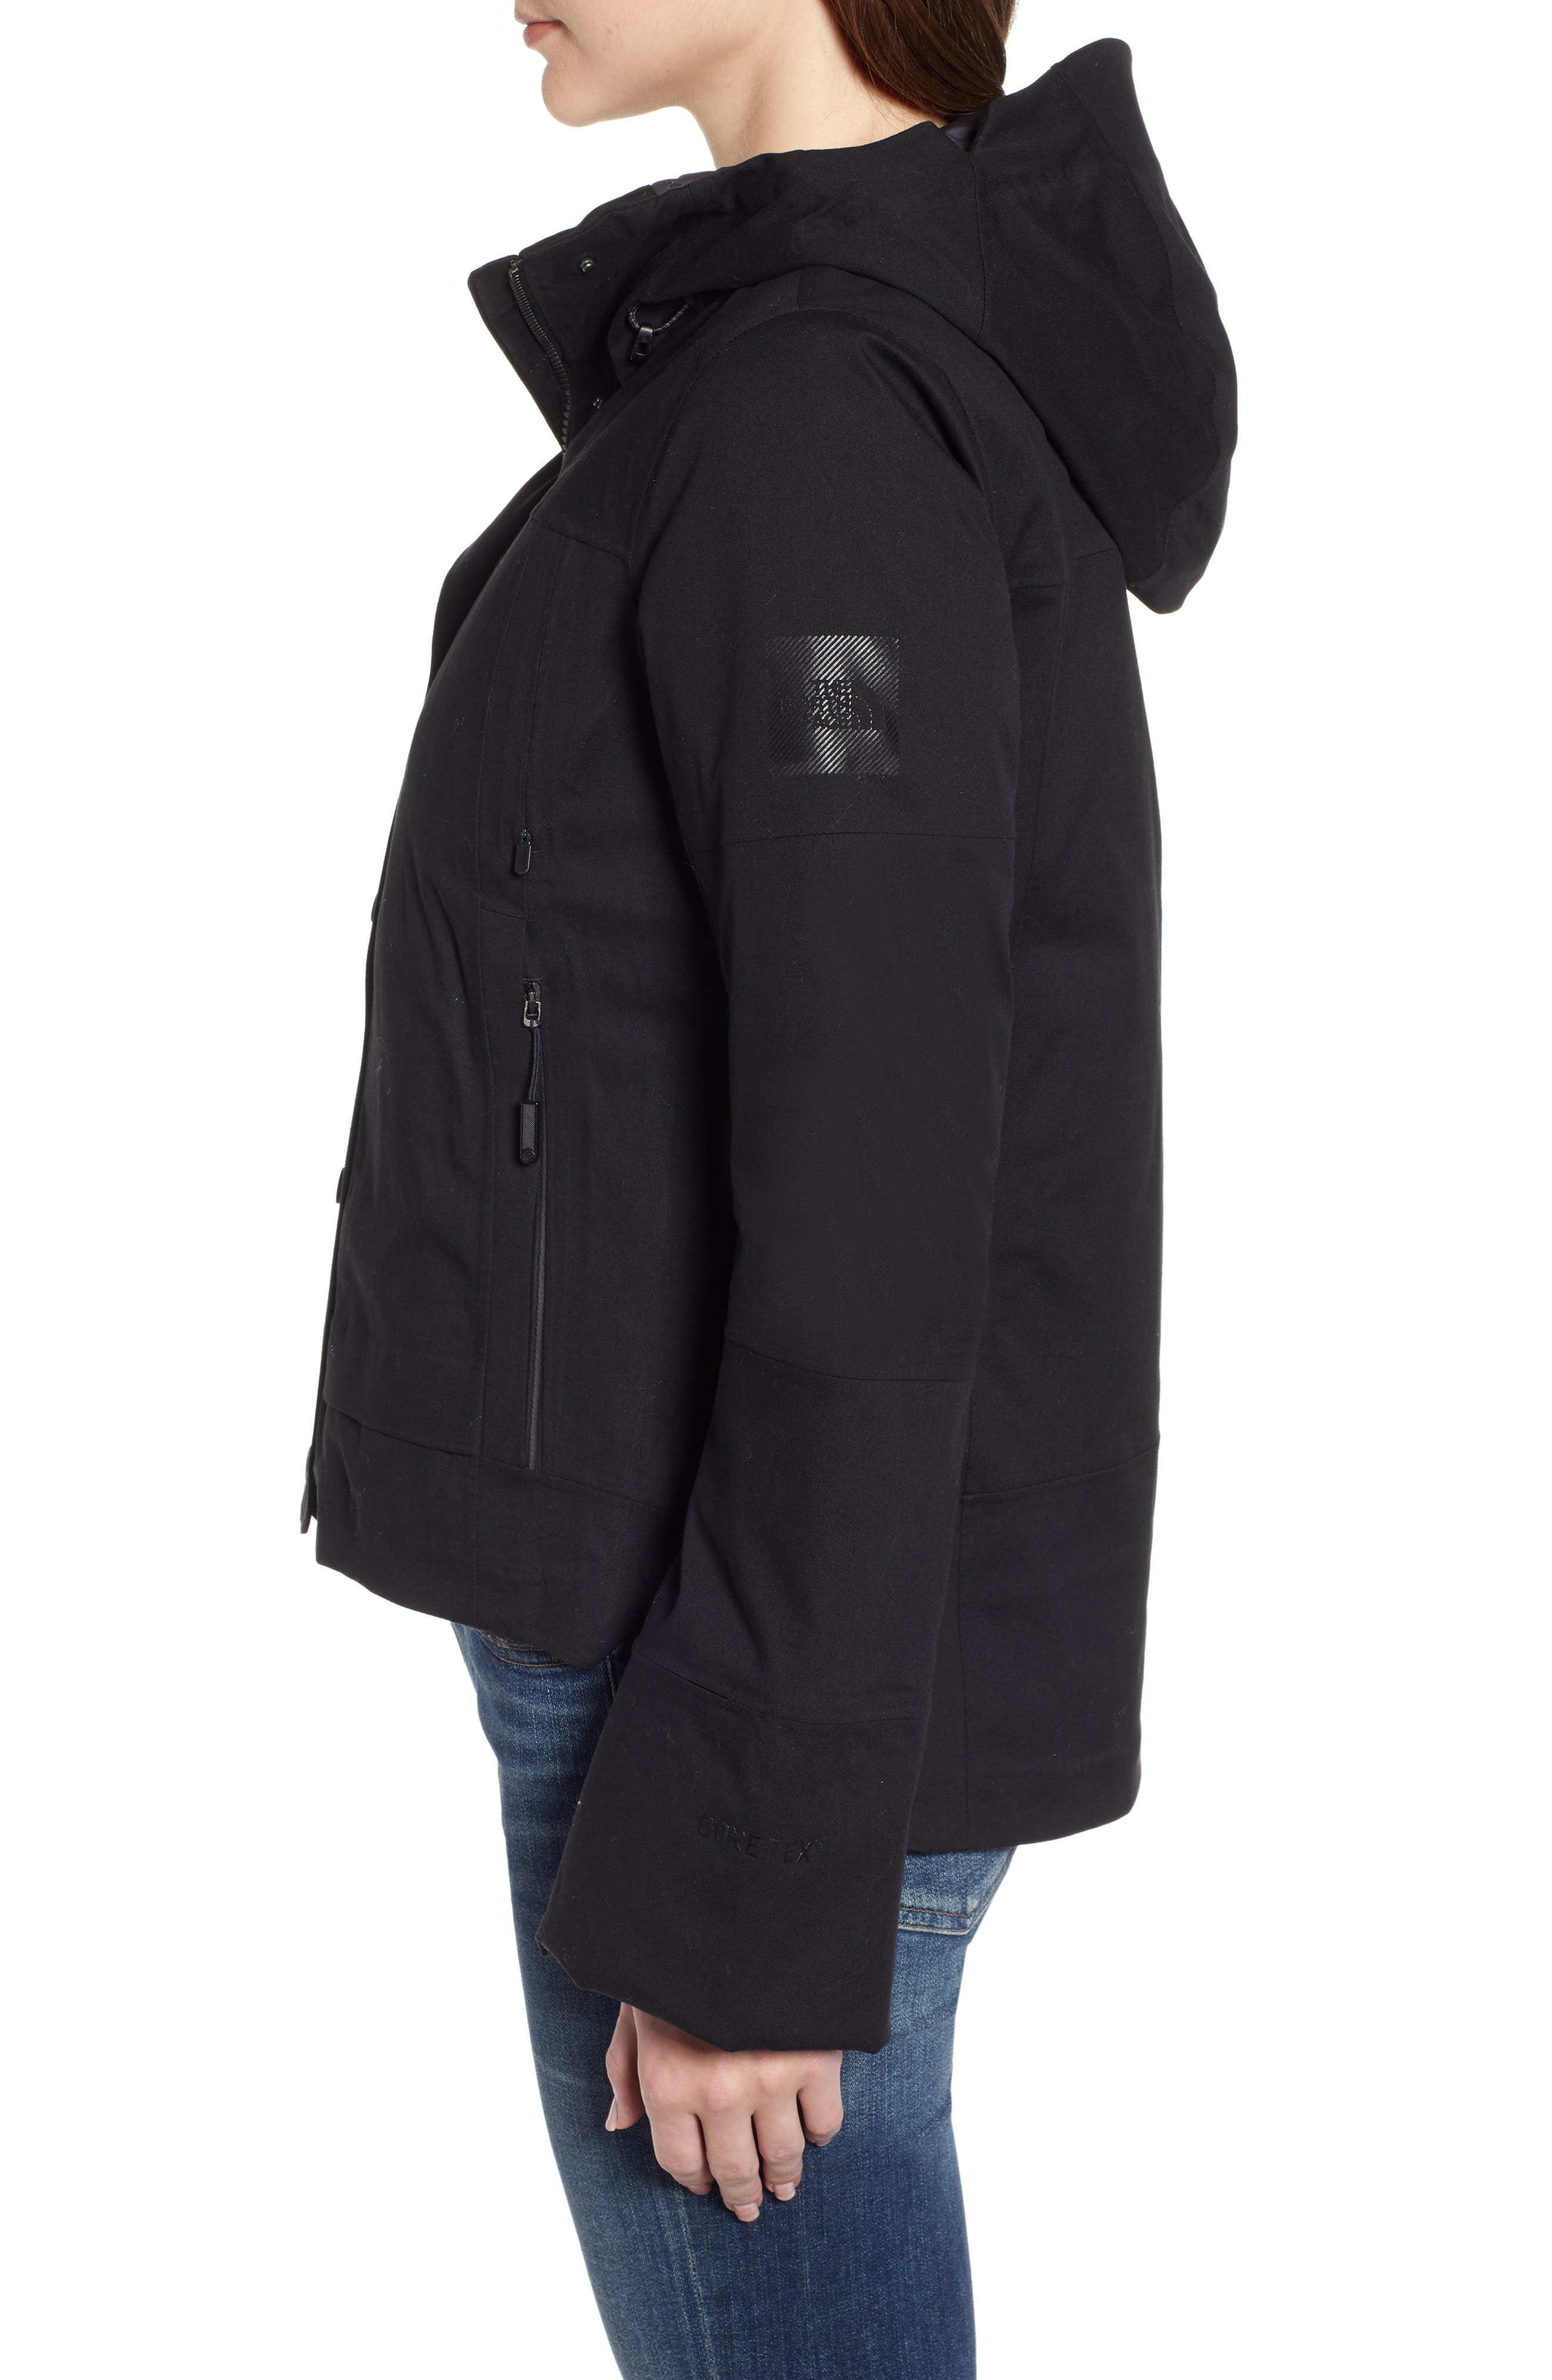 THE NORTH FACE,                             Cryos 2L Mountain Gore-Tex<sup>®</sup> Down Jacket,                             Alternate thumbnail 3, color,                             TNF BLACK